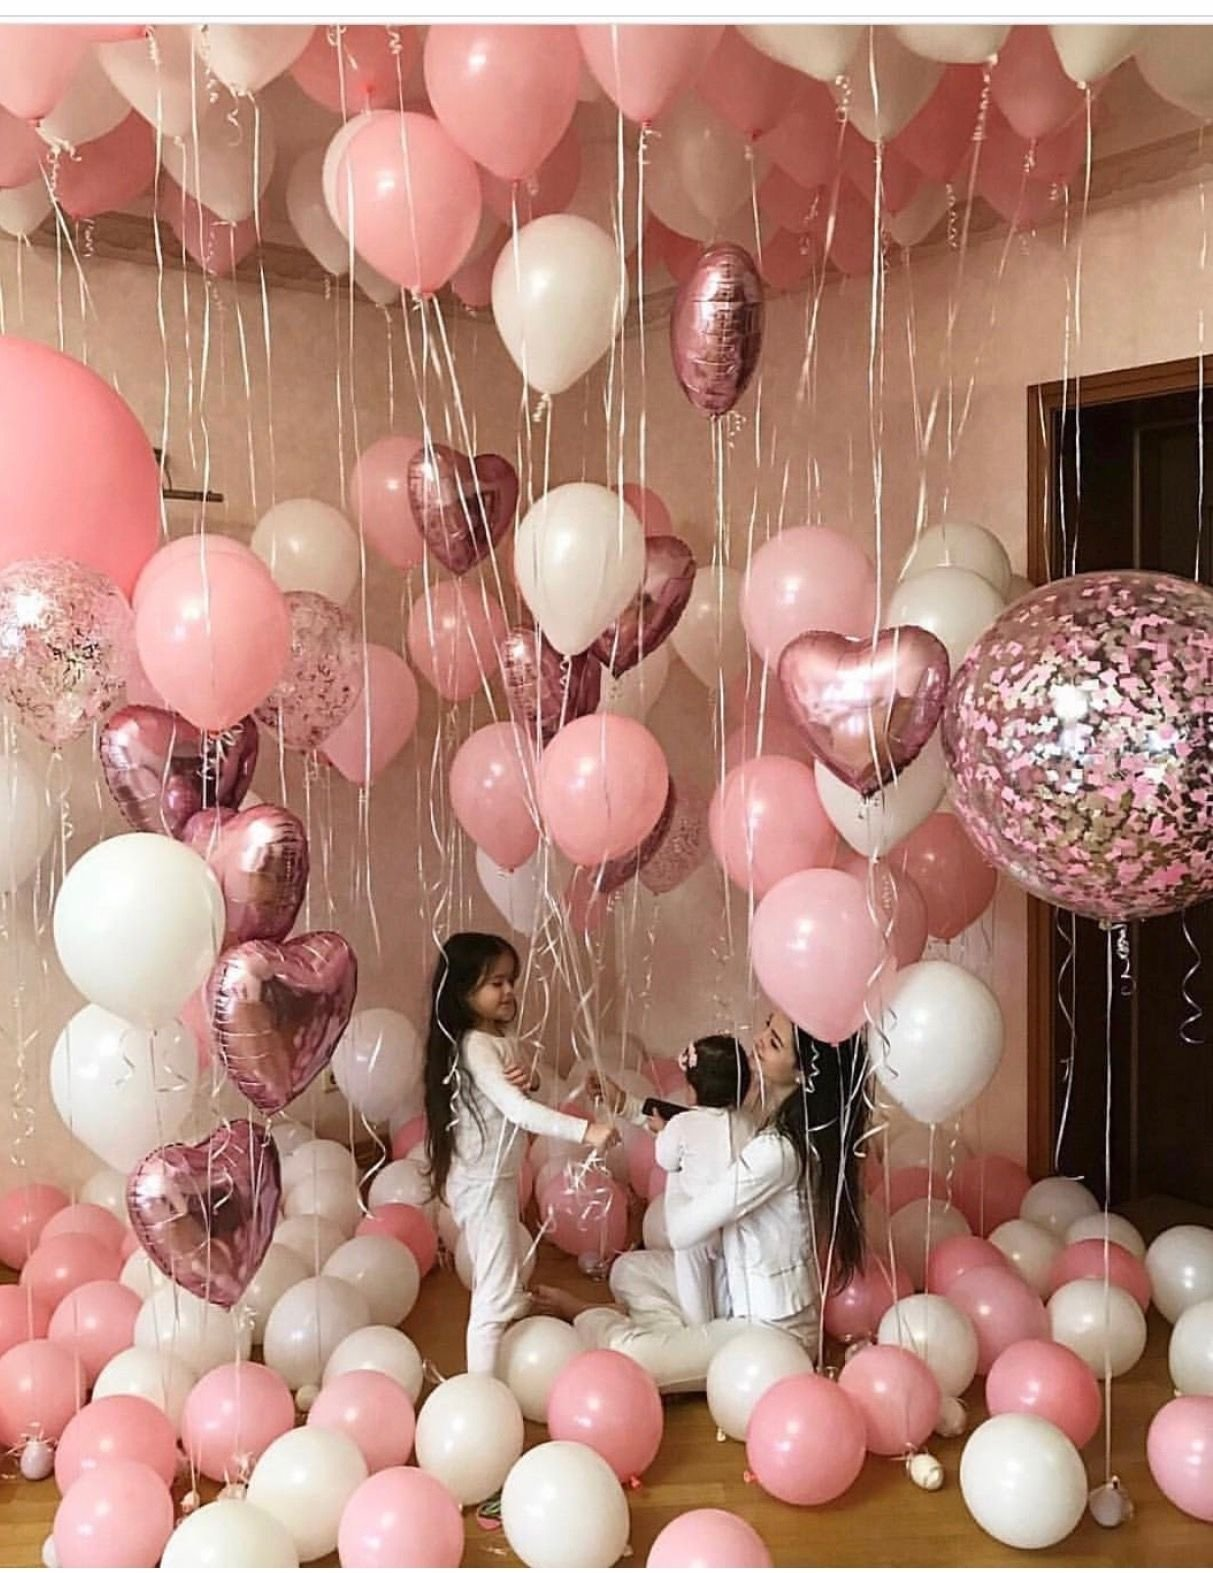 10 Perfect 25Th Birthday Party Ideas For Her Full Of Balloons Birthdays Time